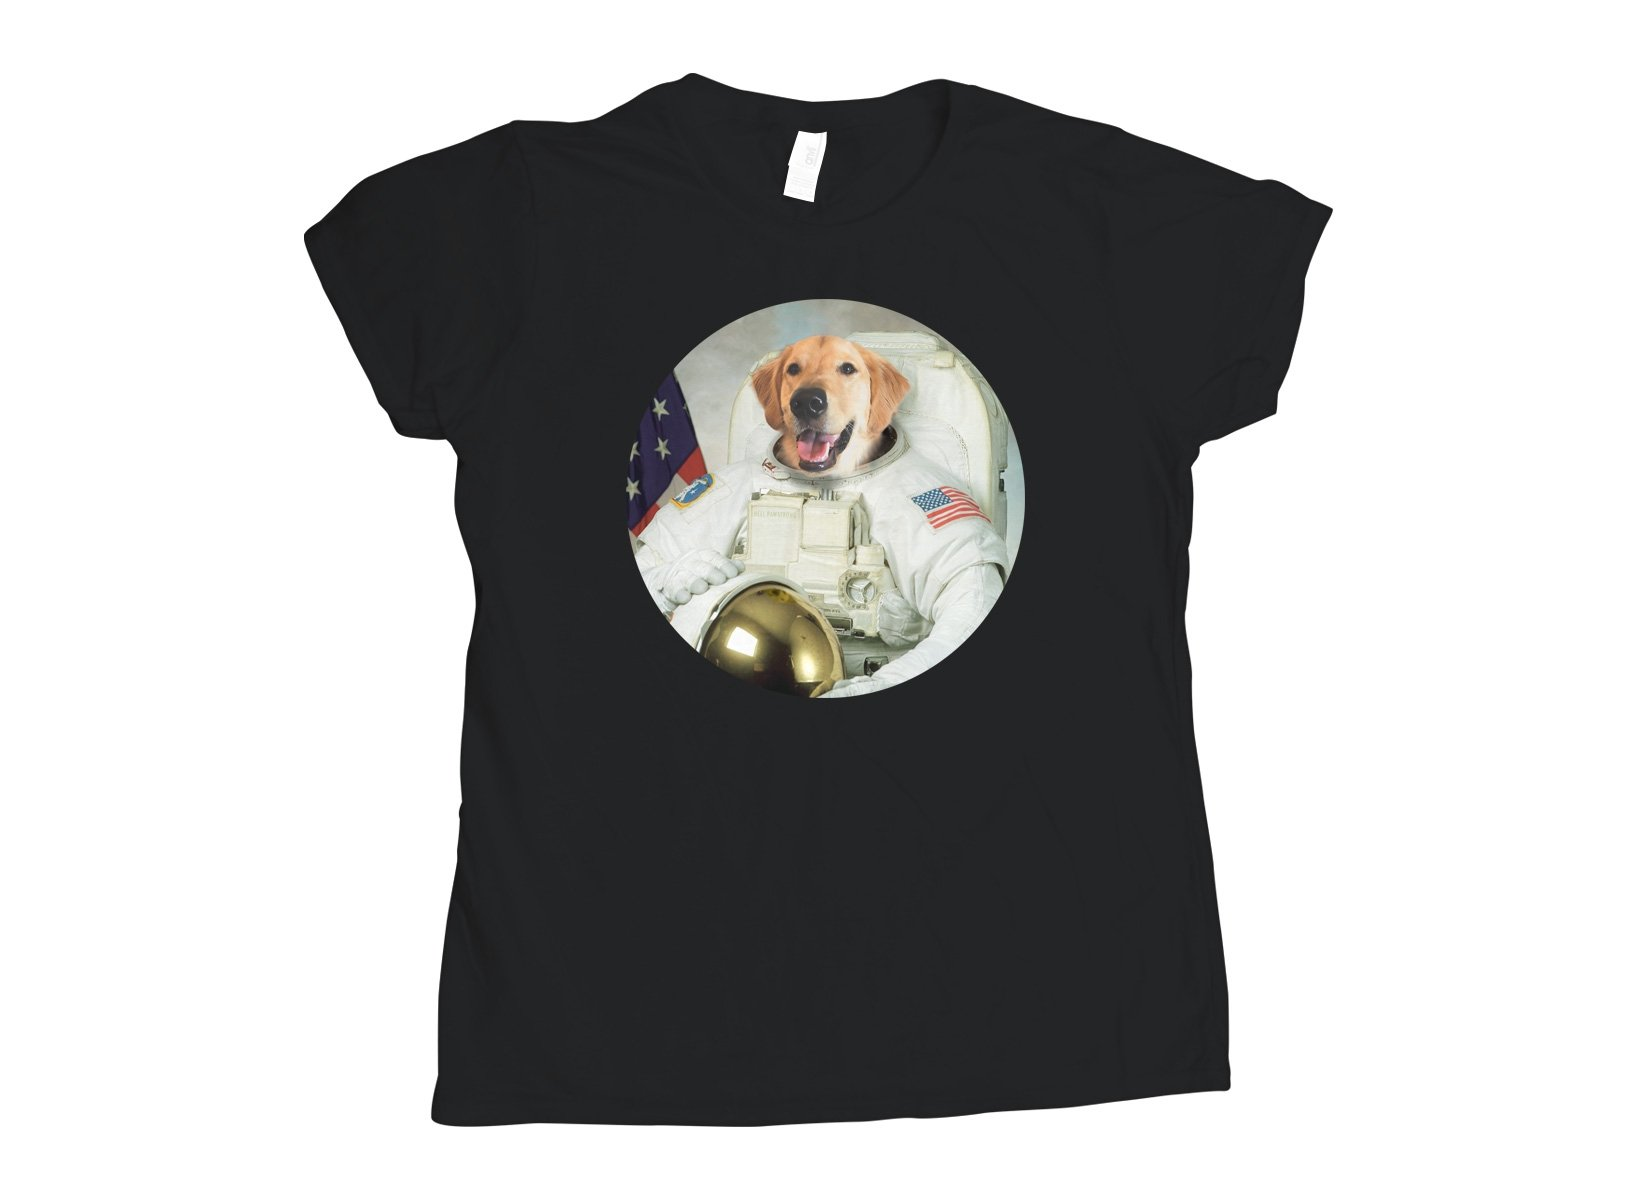 Astrodog on Womens T-Shirt